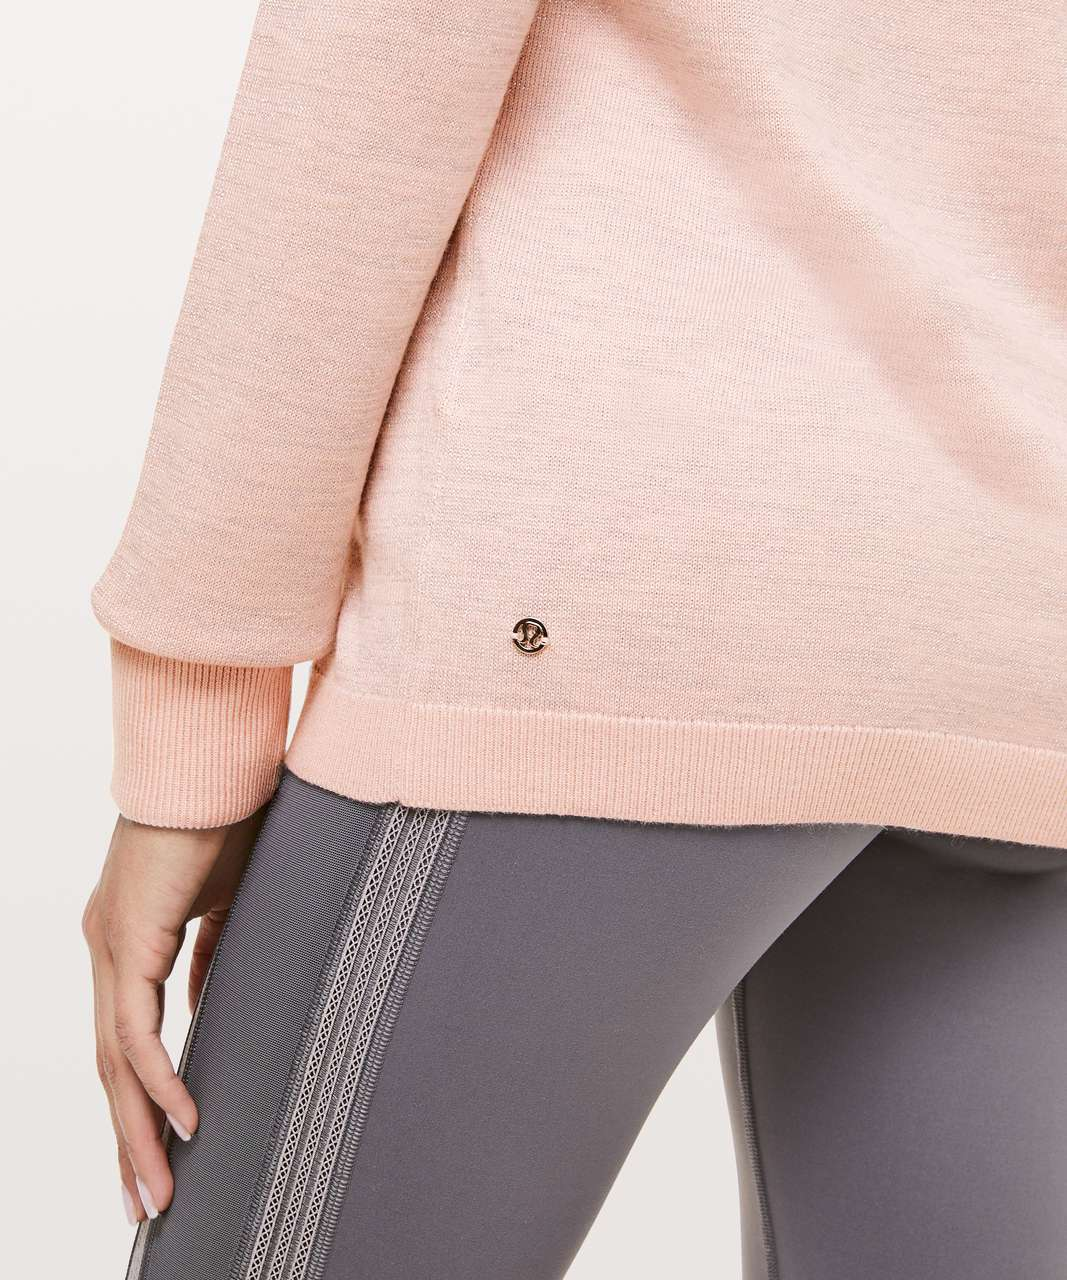 Lululemon Soft Shine Sweater - Misty Pink / Antique Silver